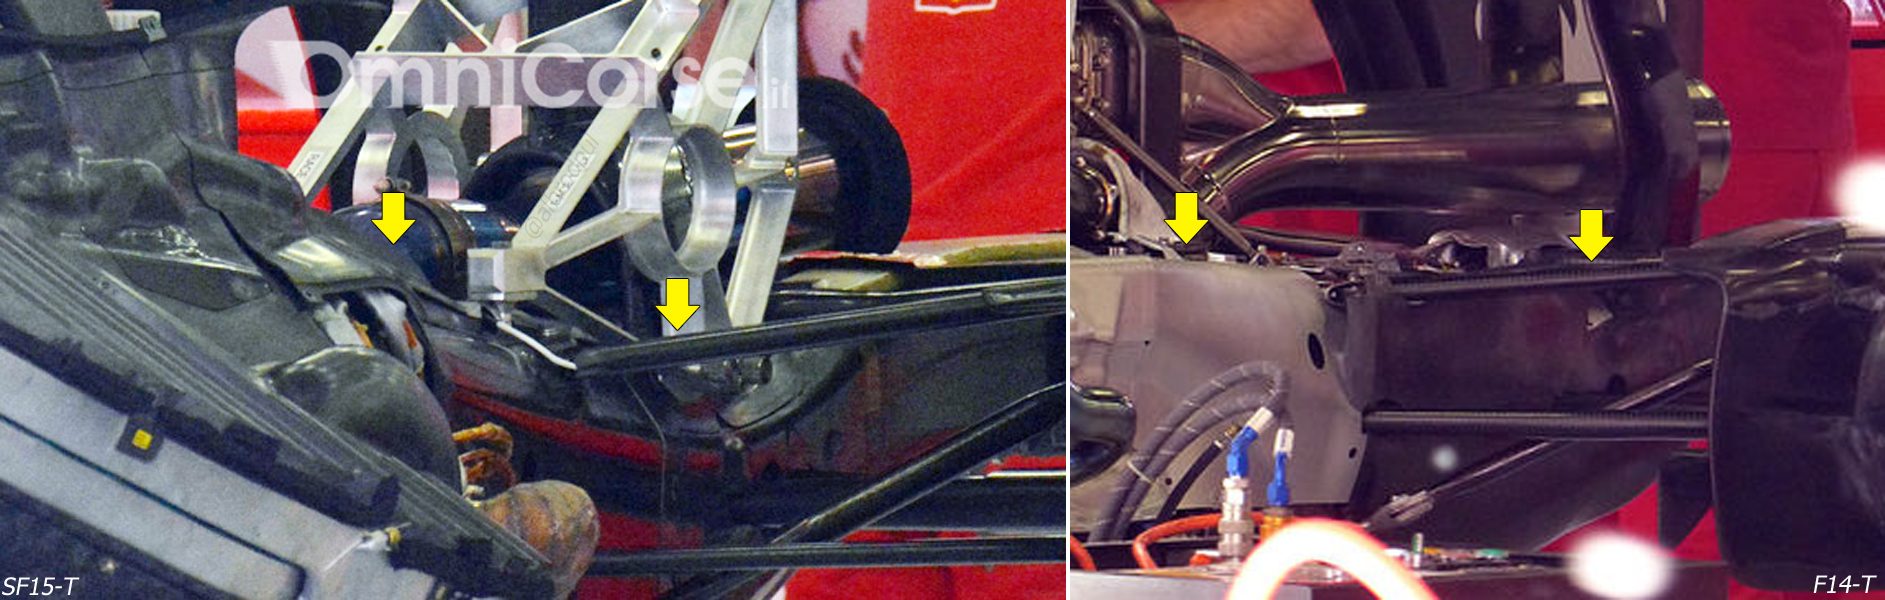 sf15-t-gearbox